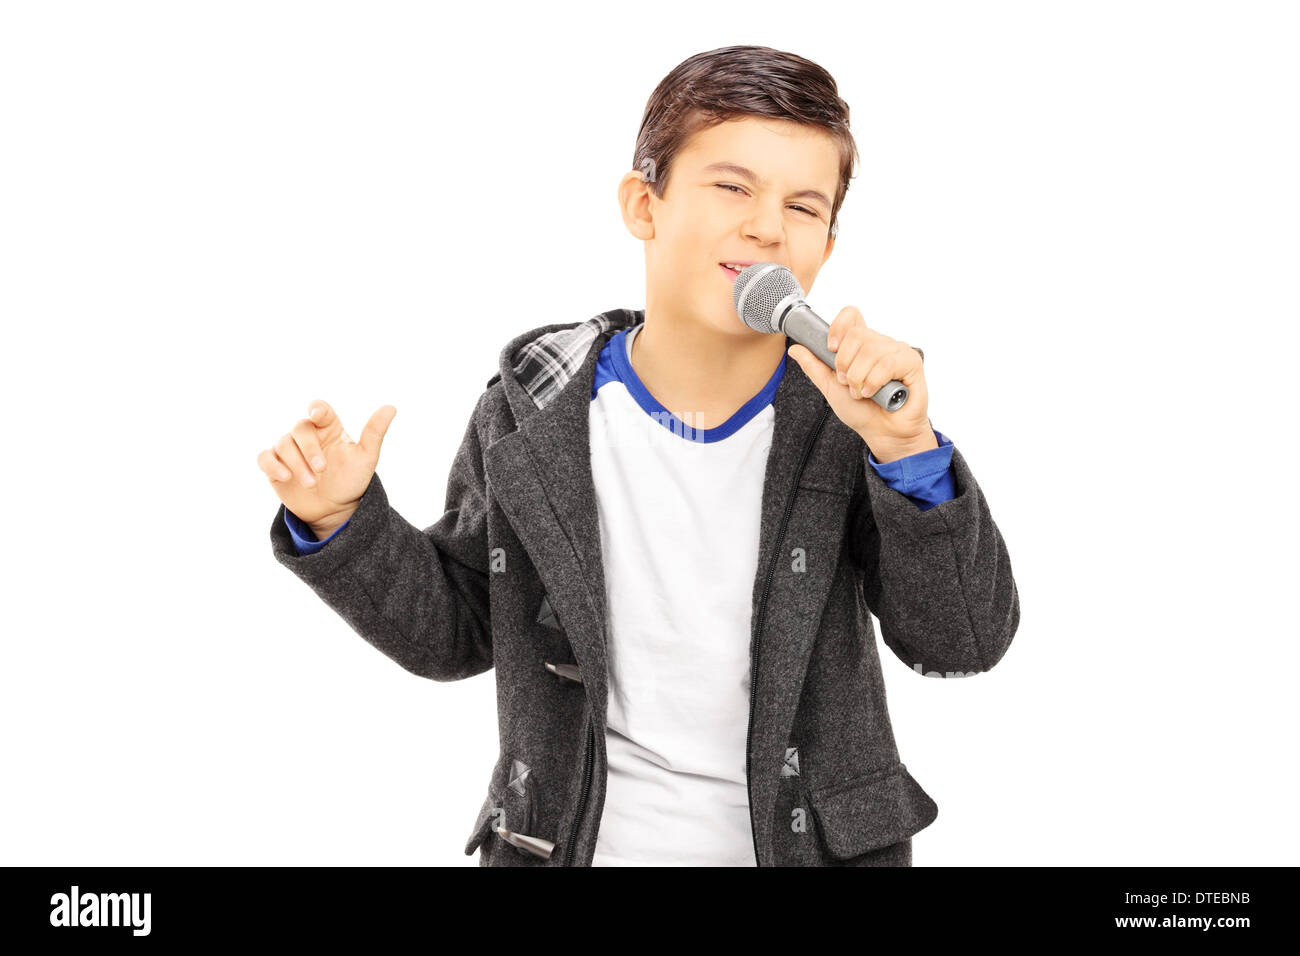 Boy singing on microphone - Stock Image